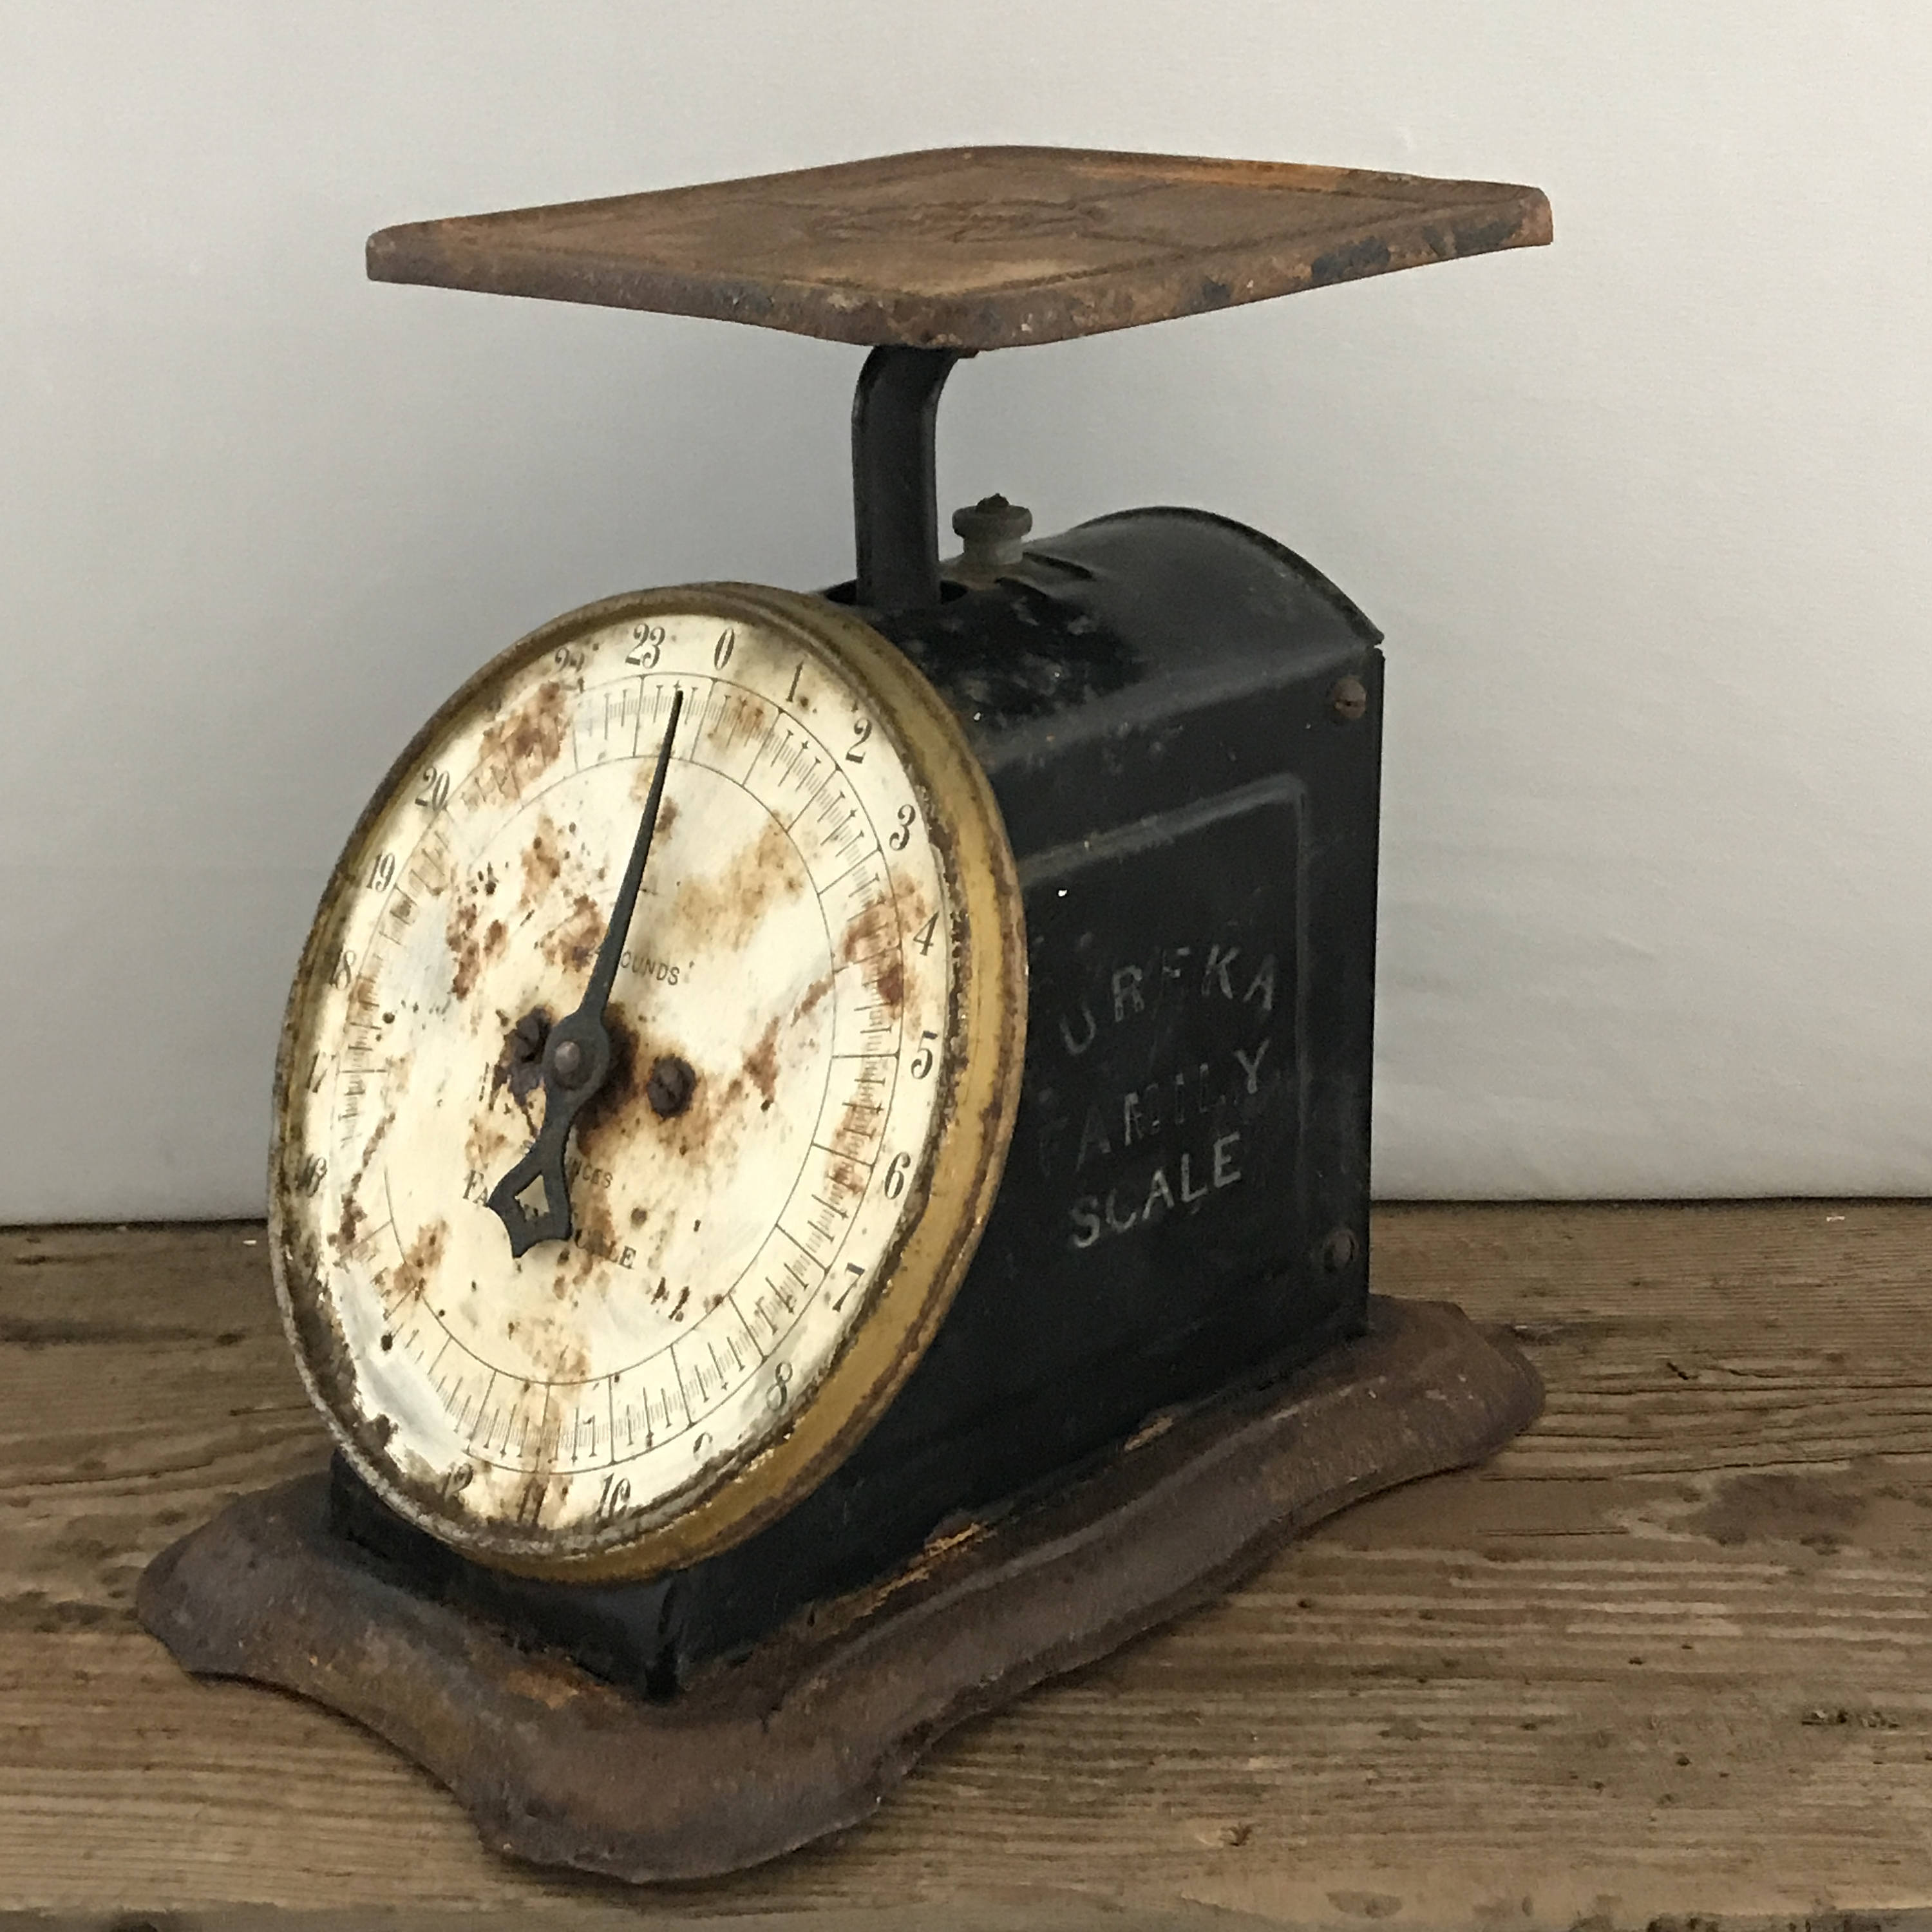 Superbe Rusty Old Metal Scale   Eureka Family Scale 1906   Antique Kitchen Decor    Farmhouse Style   Vintage Food Scale   Industrial 24 Pound Scale